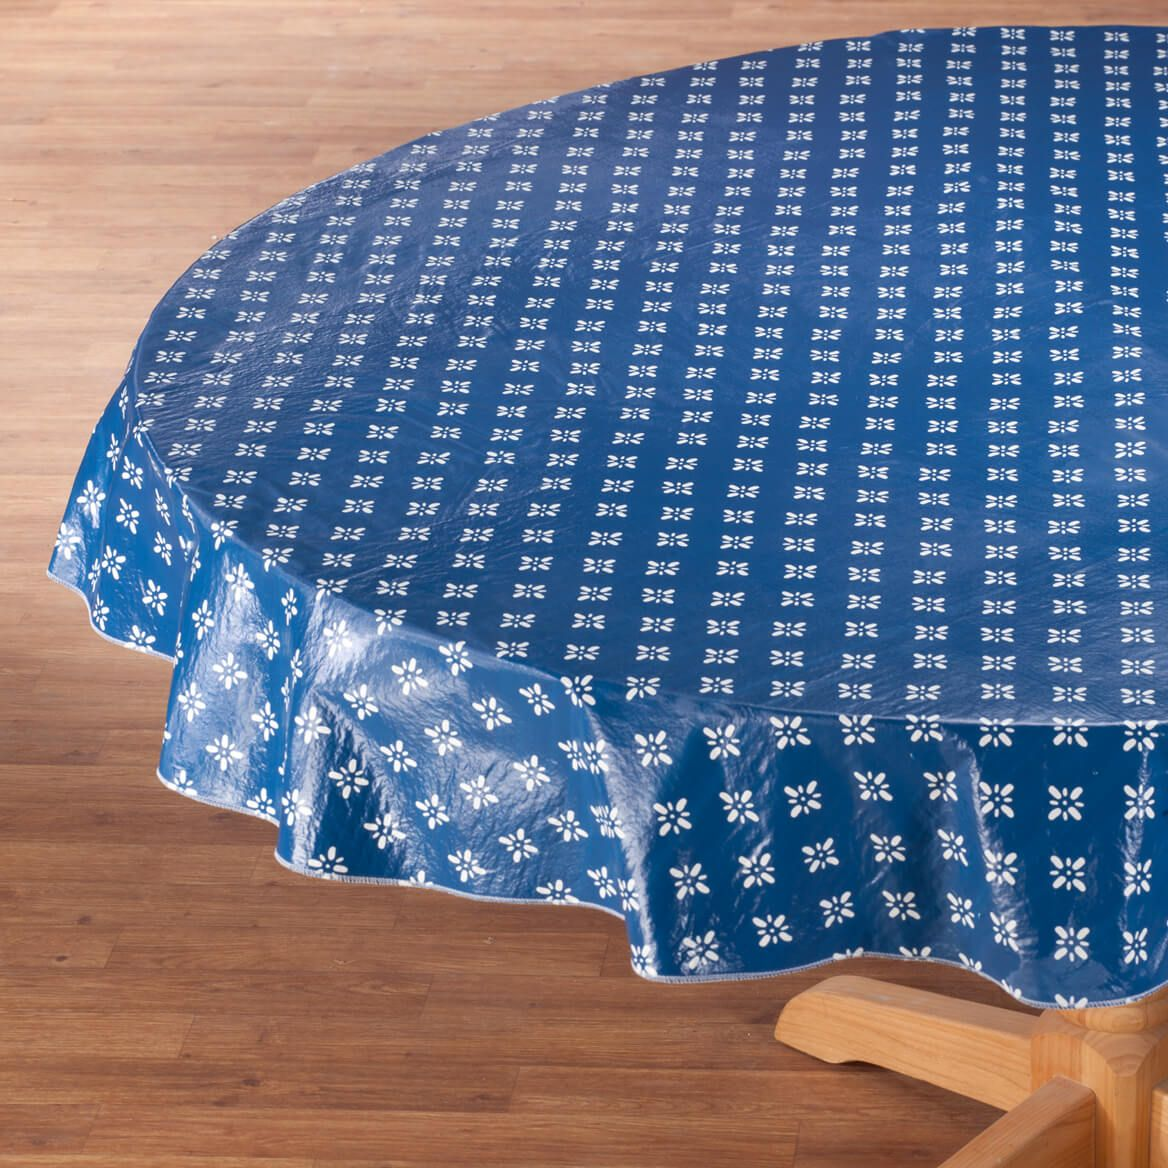 Heritage Vinyl Tablecovers By Home-Style Kitchen™-355909